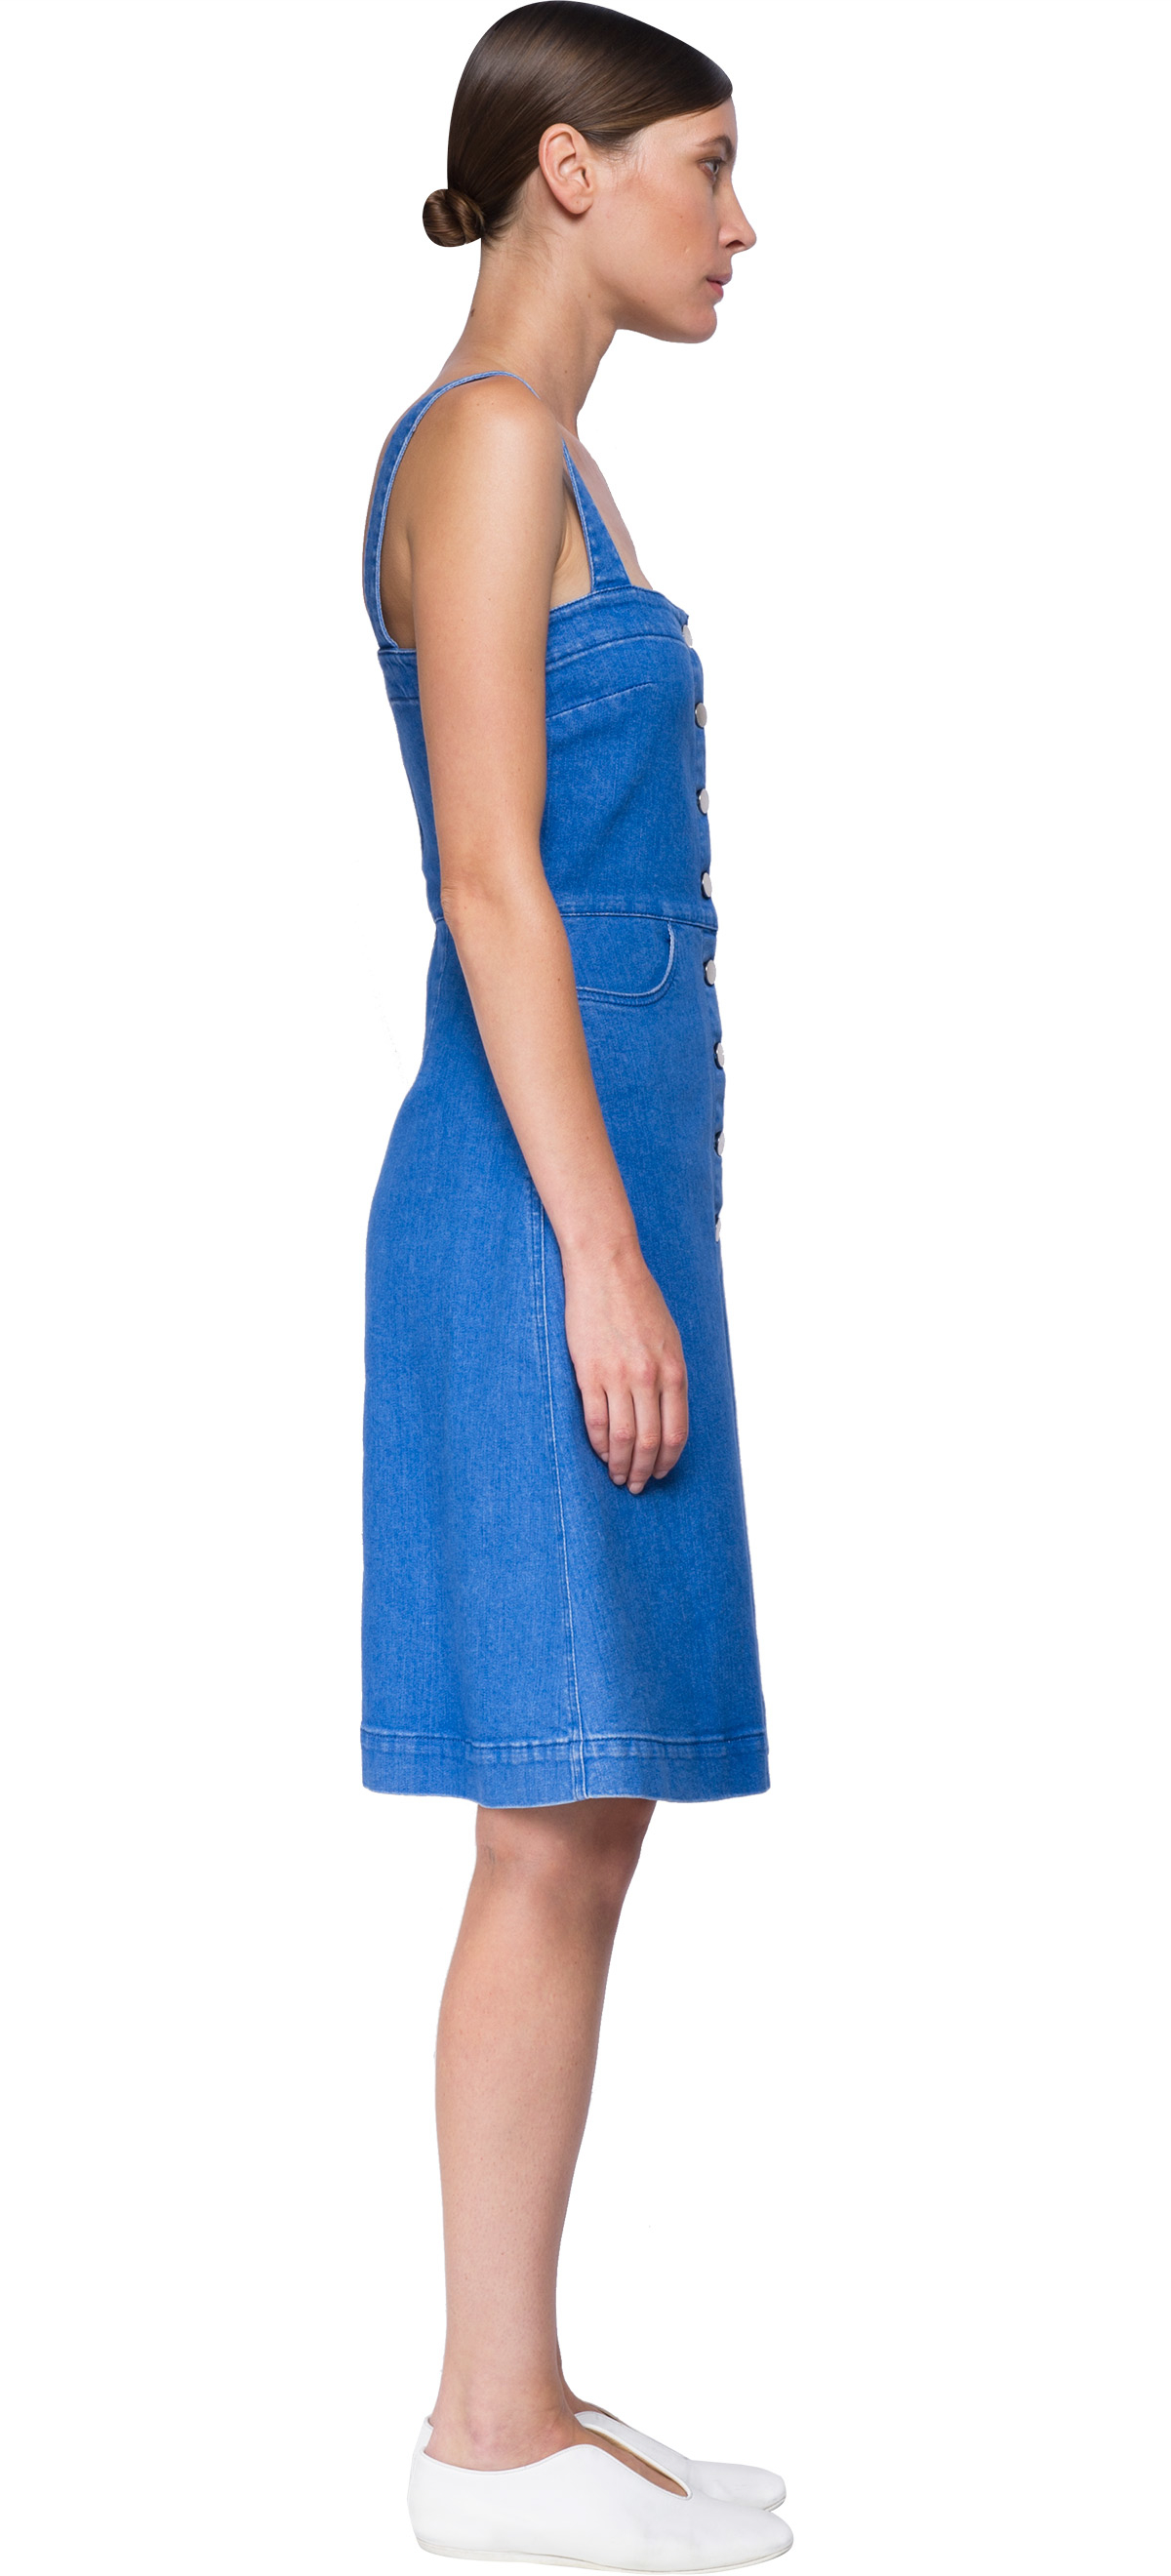 709ee844a44 Stella Mccartney Denim Dress Linda